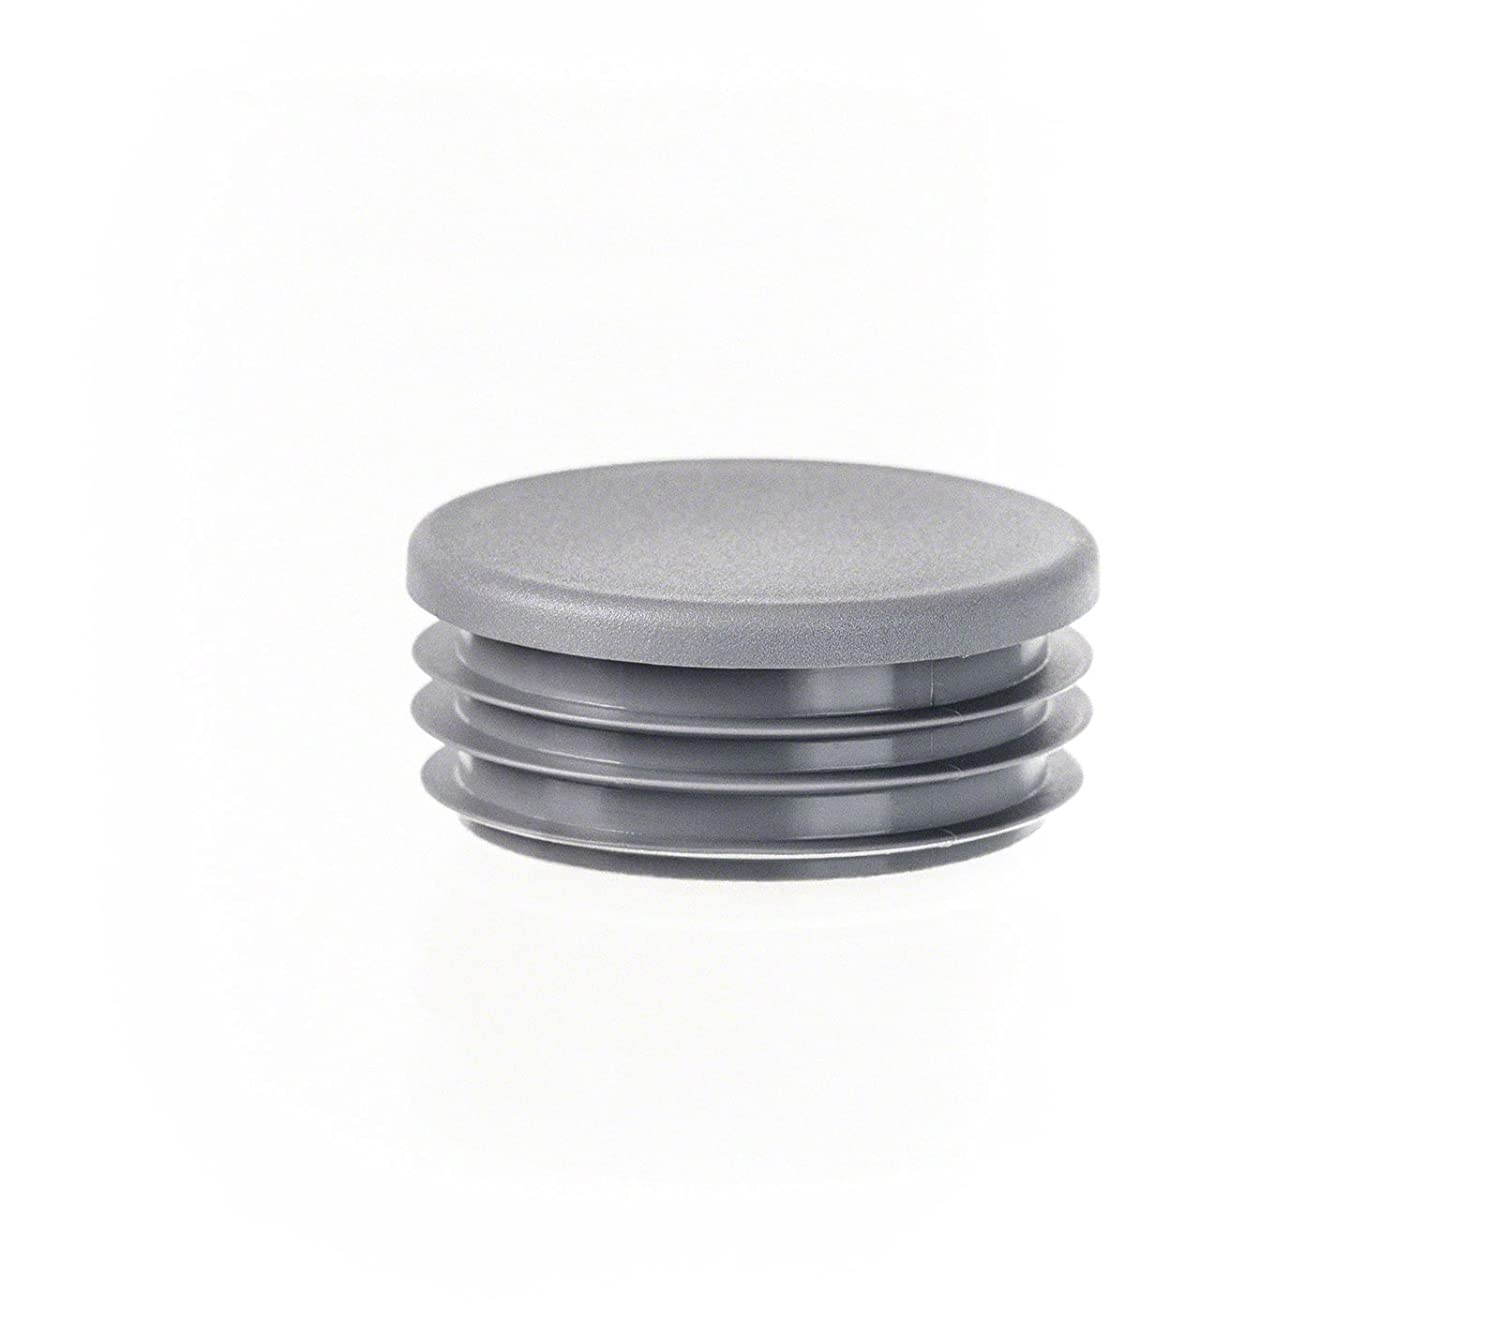 5 pcs. round end cap 90 grey plastic end caps plugs EMFA round tubing cap